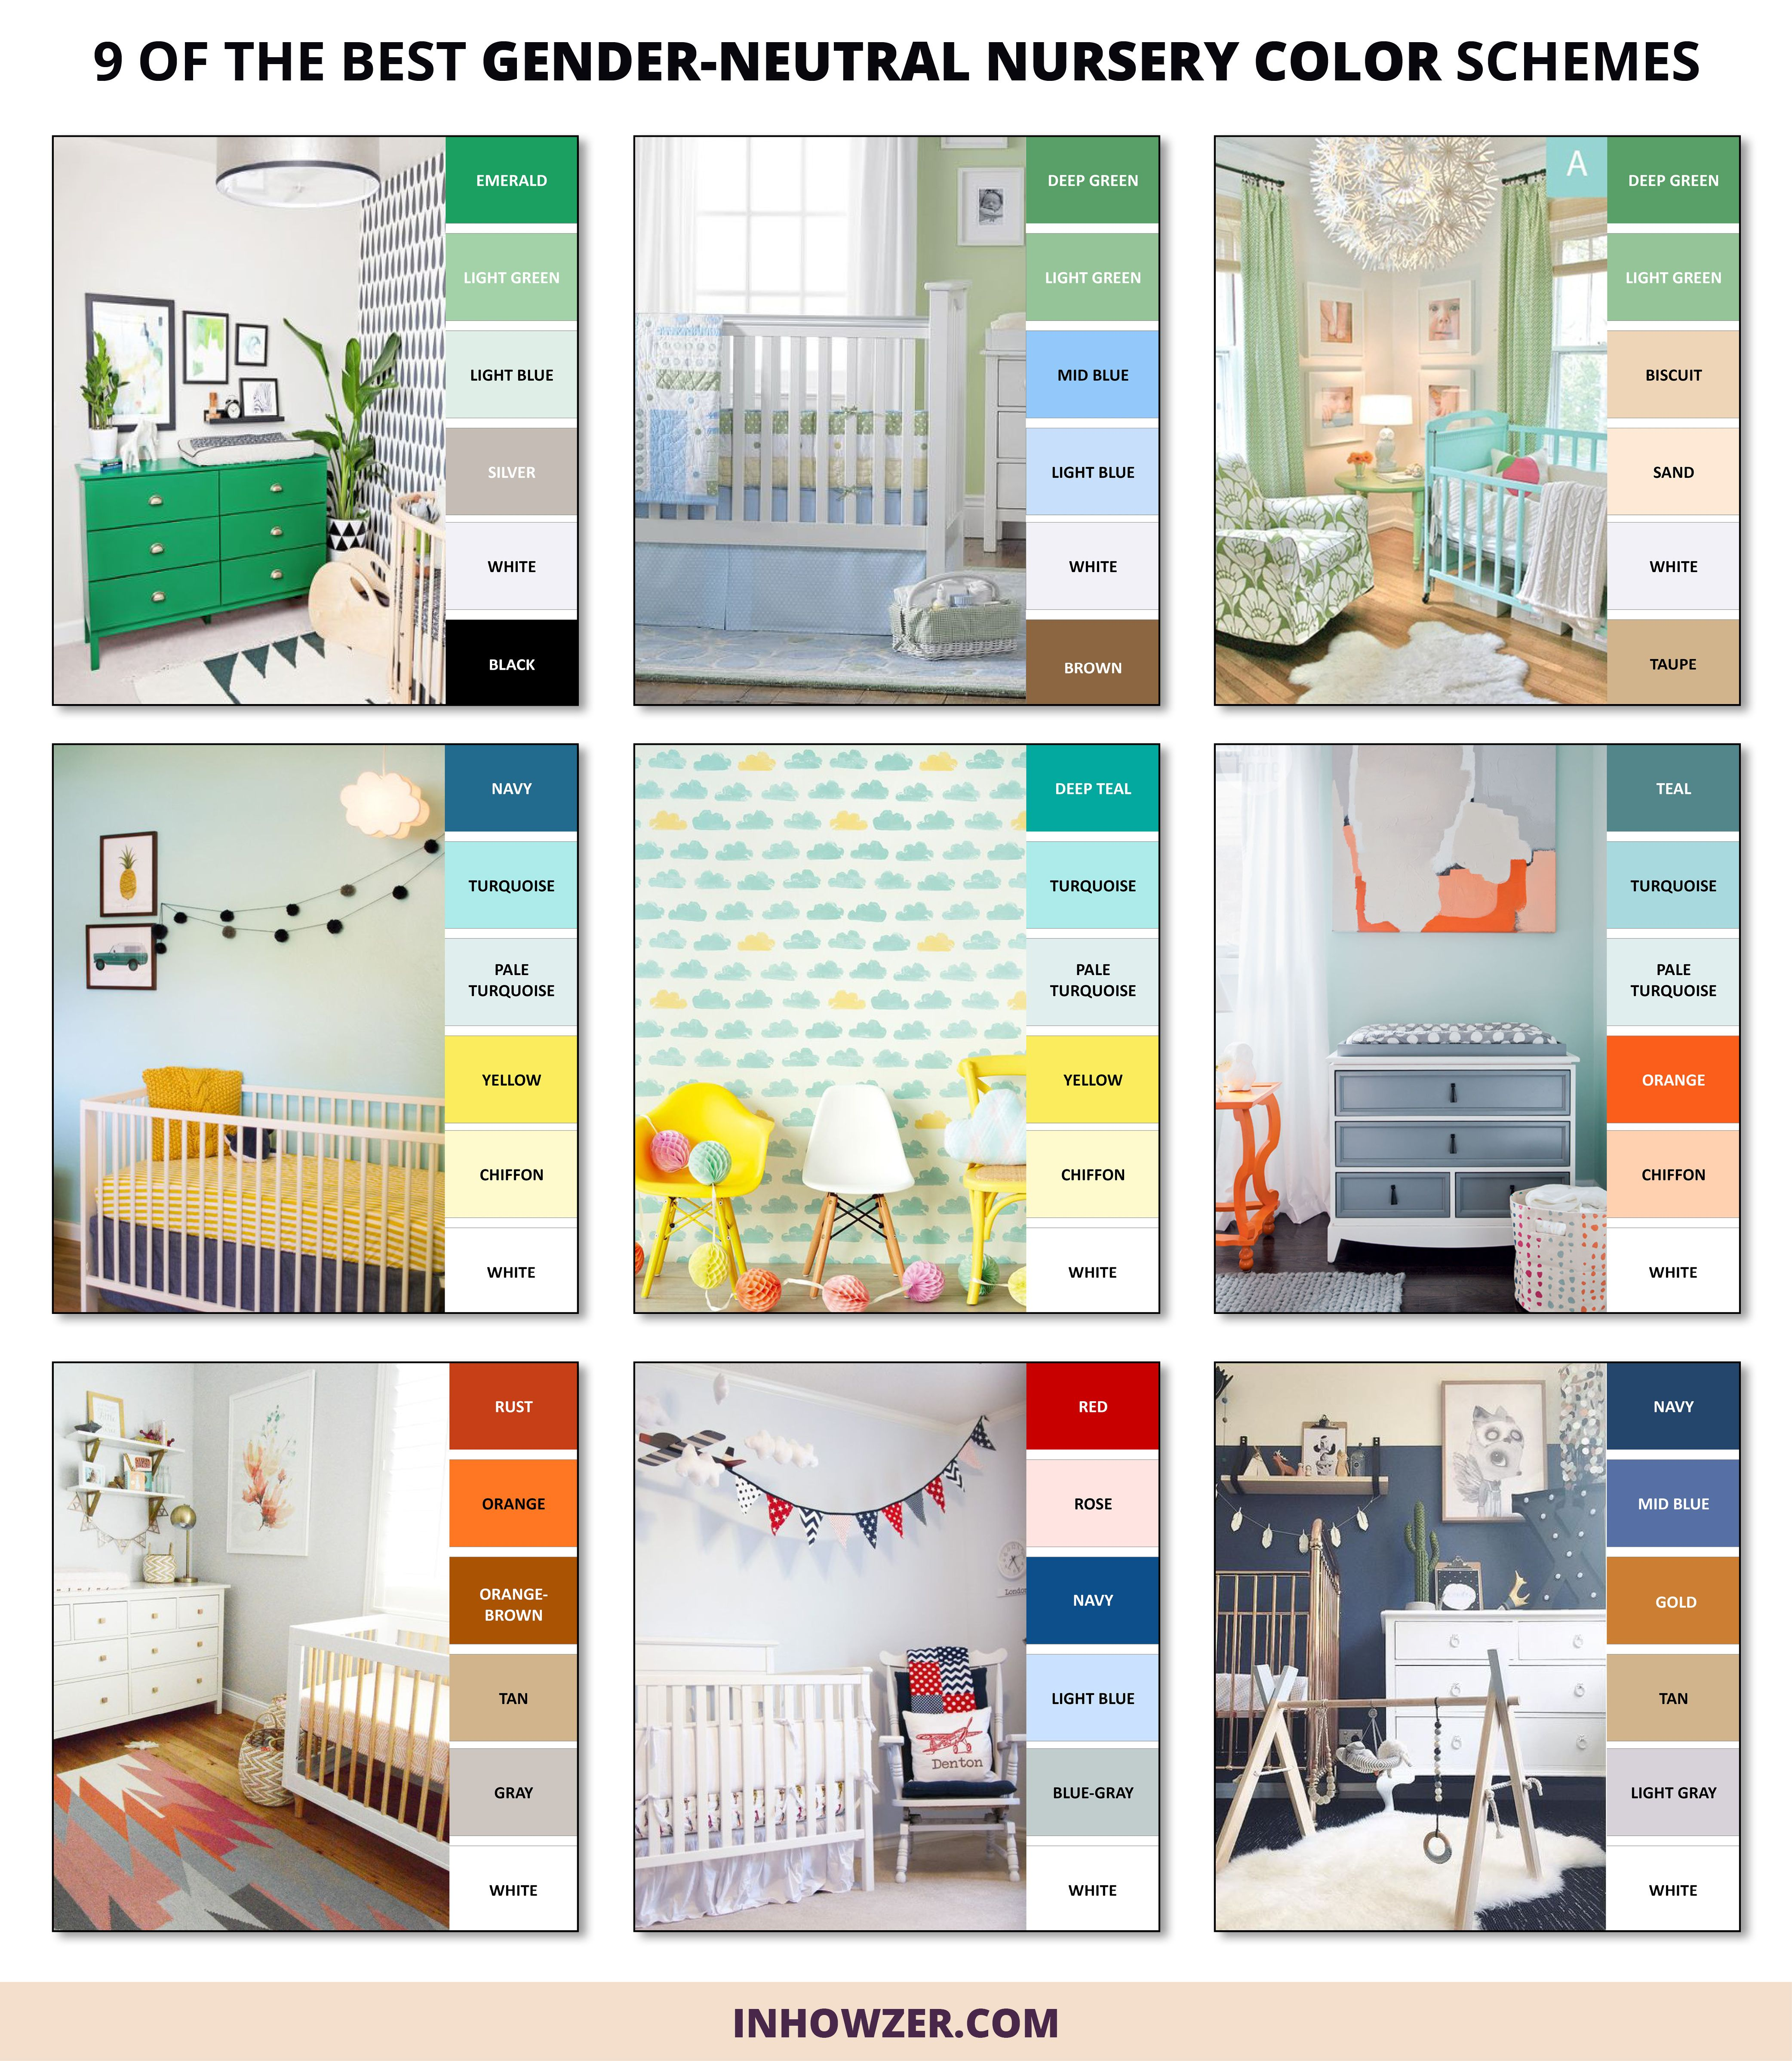 Looking for gender neutral colors for your uni nursery